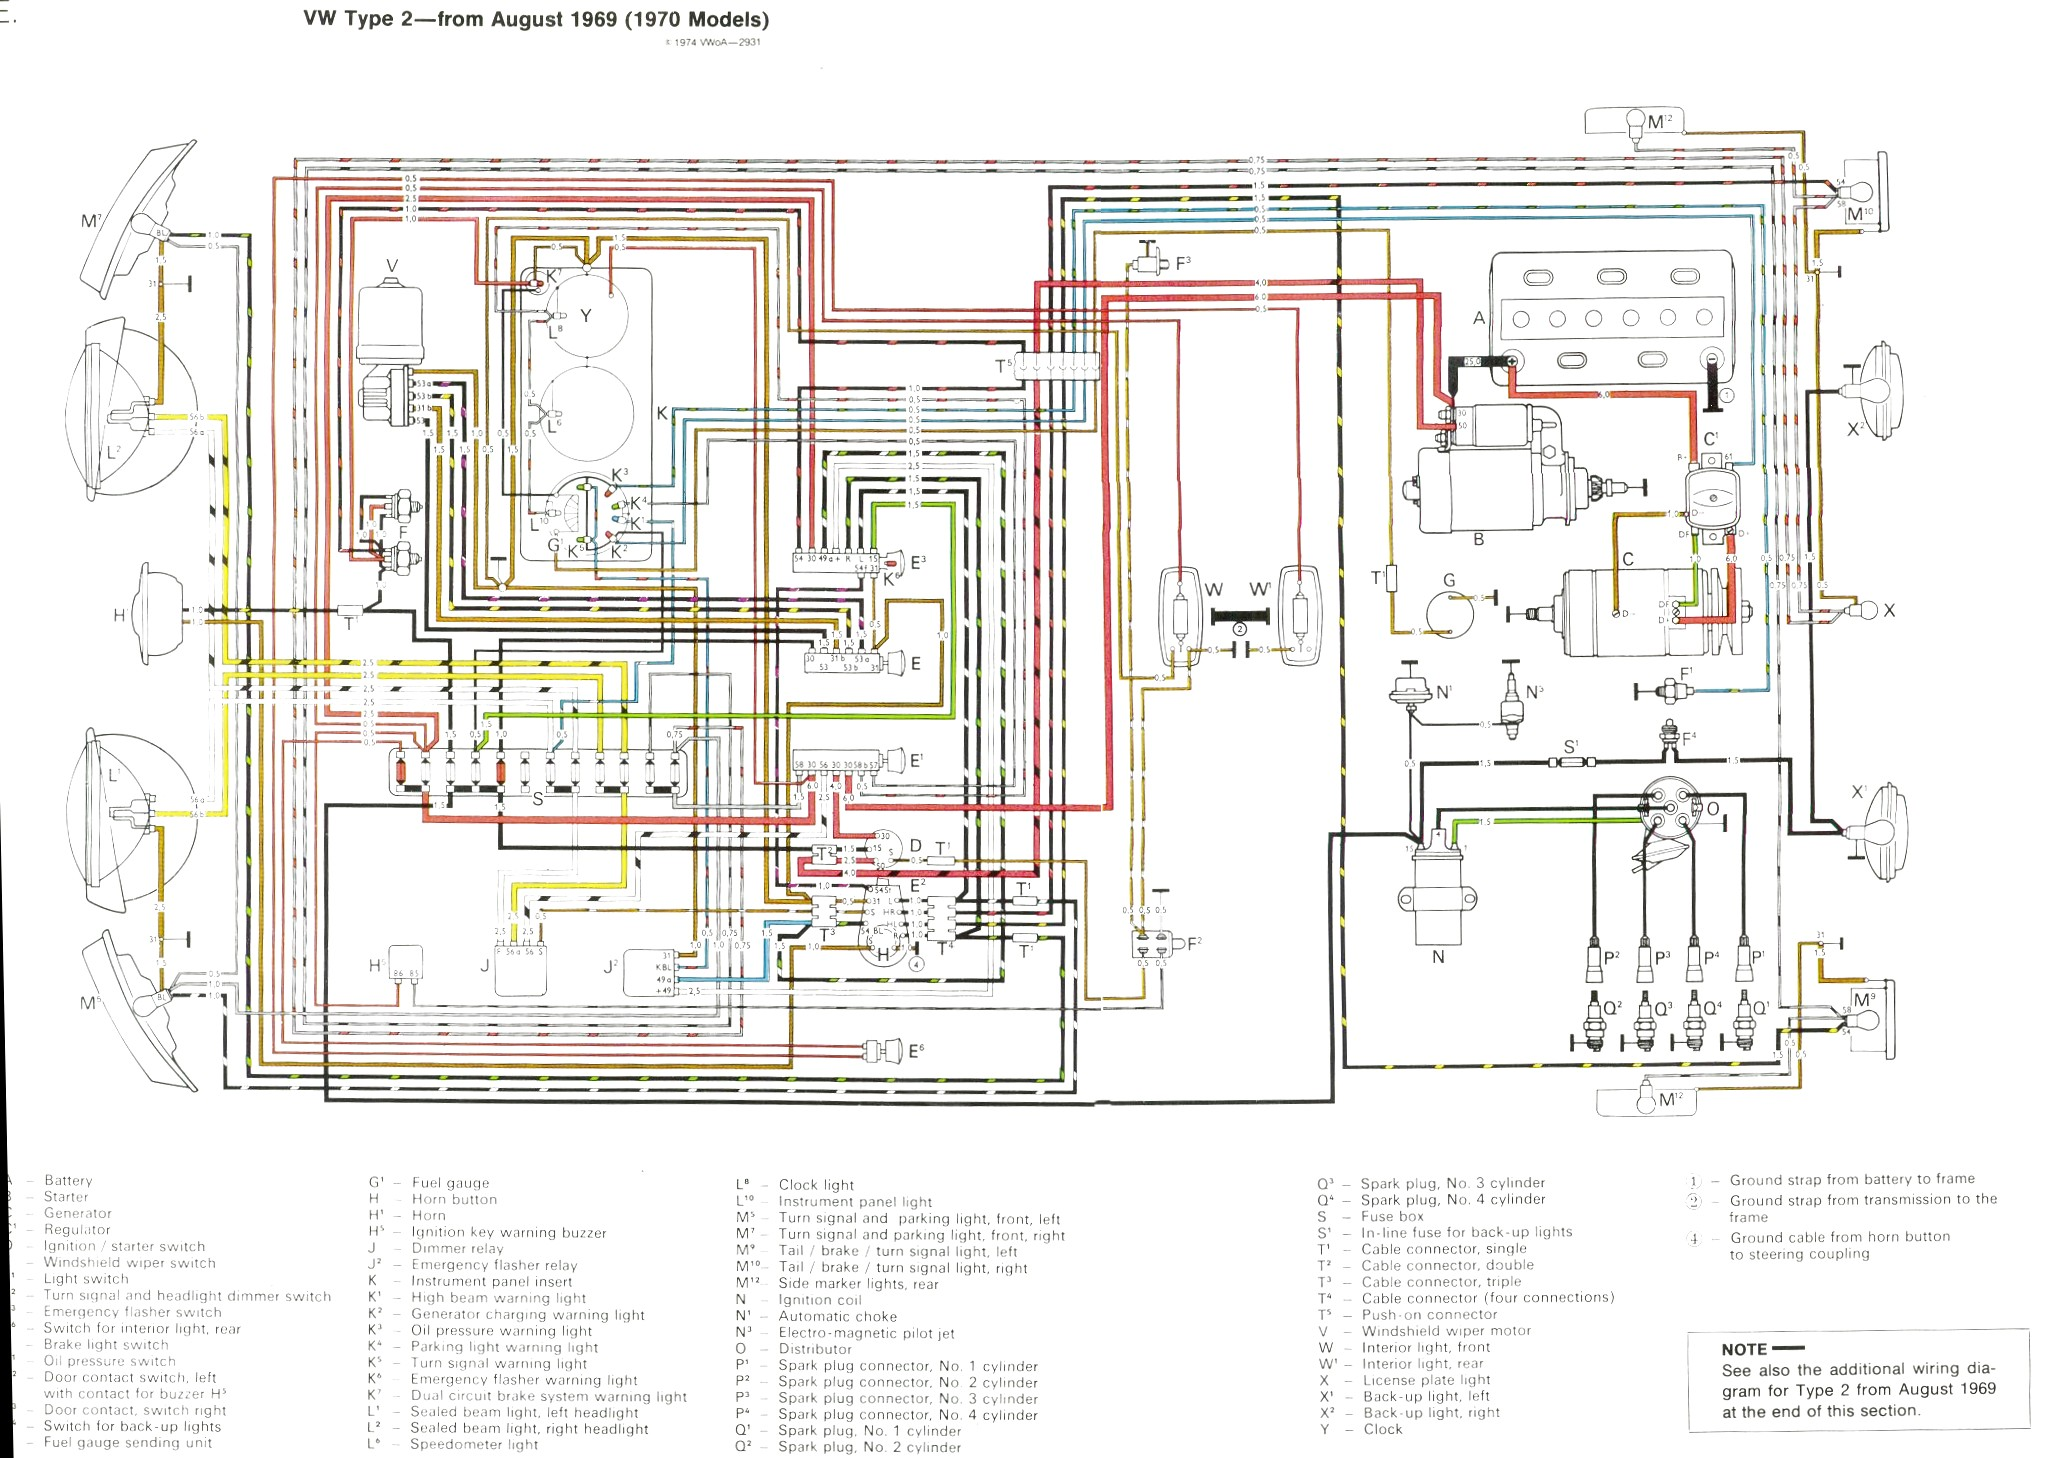 VW Wiring Diagrams | 74 Vw Bus Wiring Diagram Relays |  | www.volkspower.nl